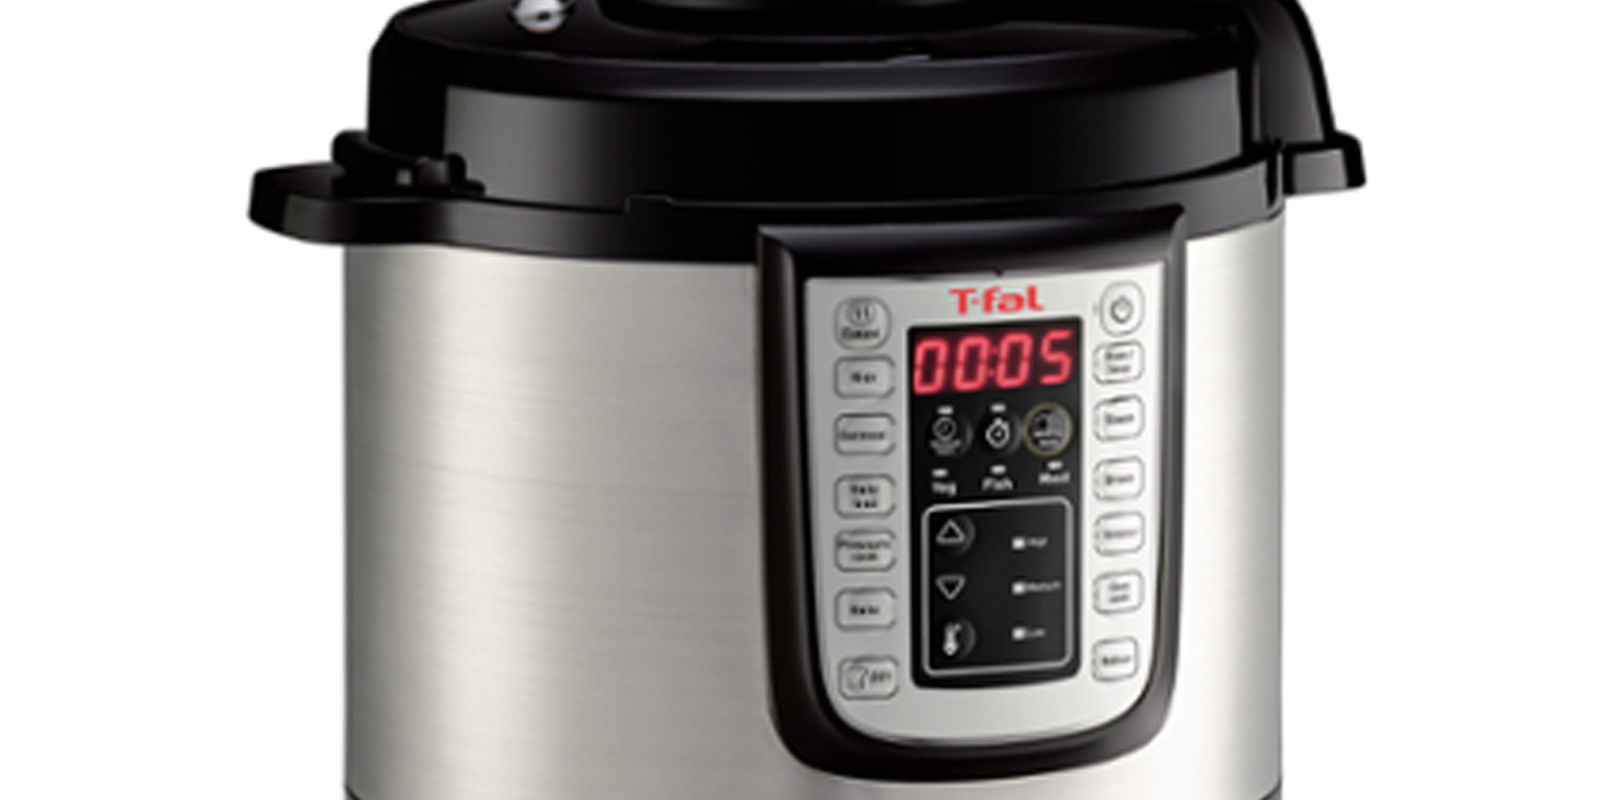 bella pressure cooker review, price and features - pros and cons